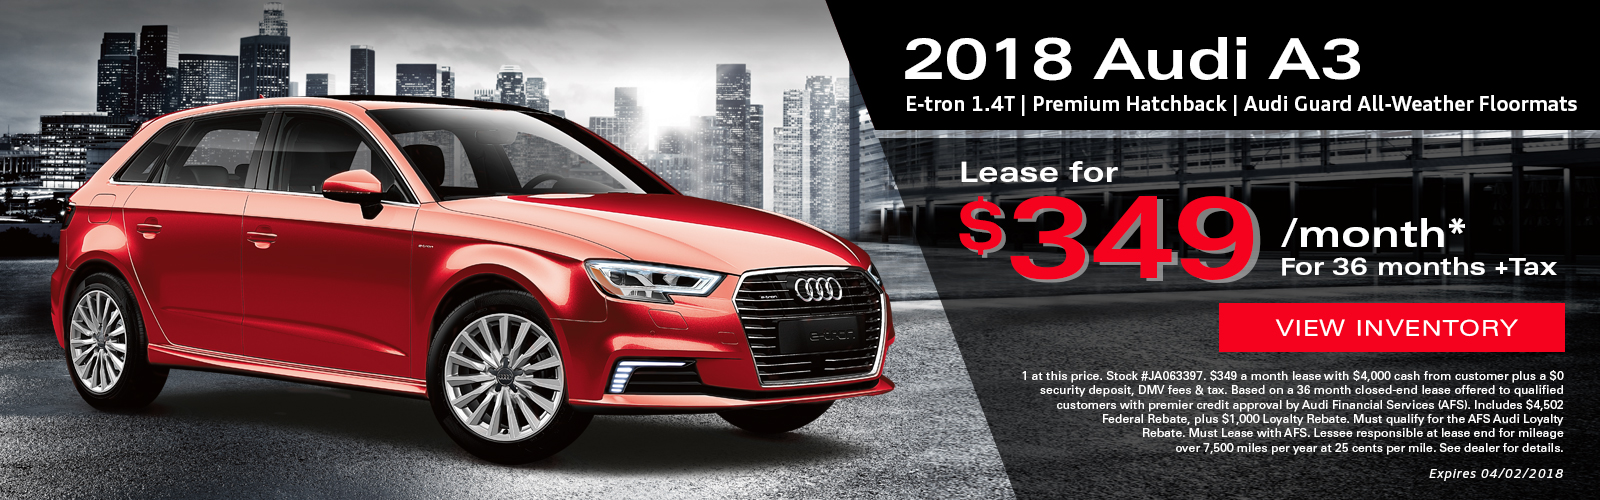 Audi Lease Specials Audi Finance Audi Palo Alto Serving San - Audi lease promotions